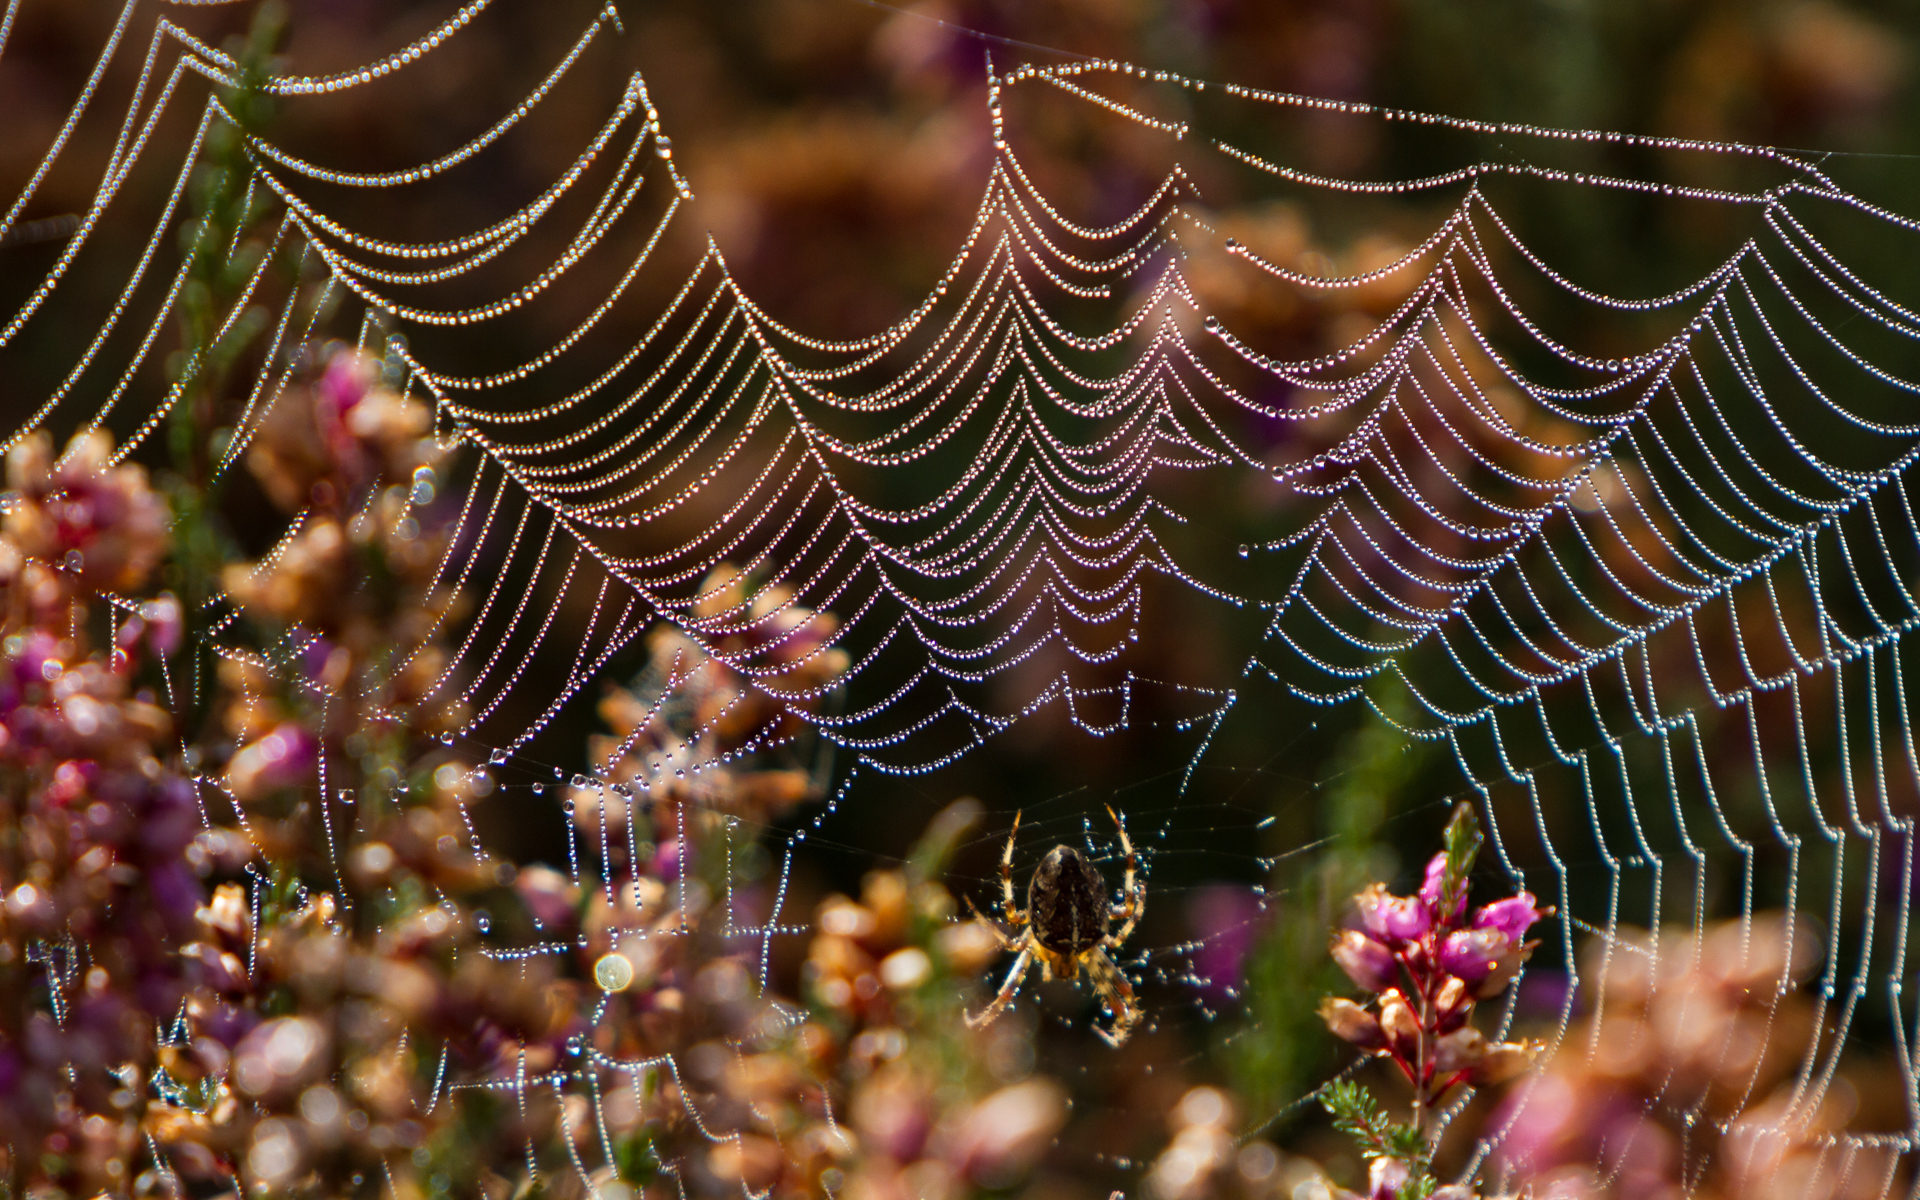 Dew forms on a spiders web